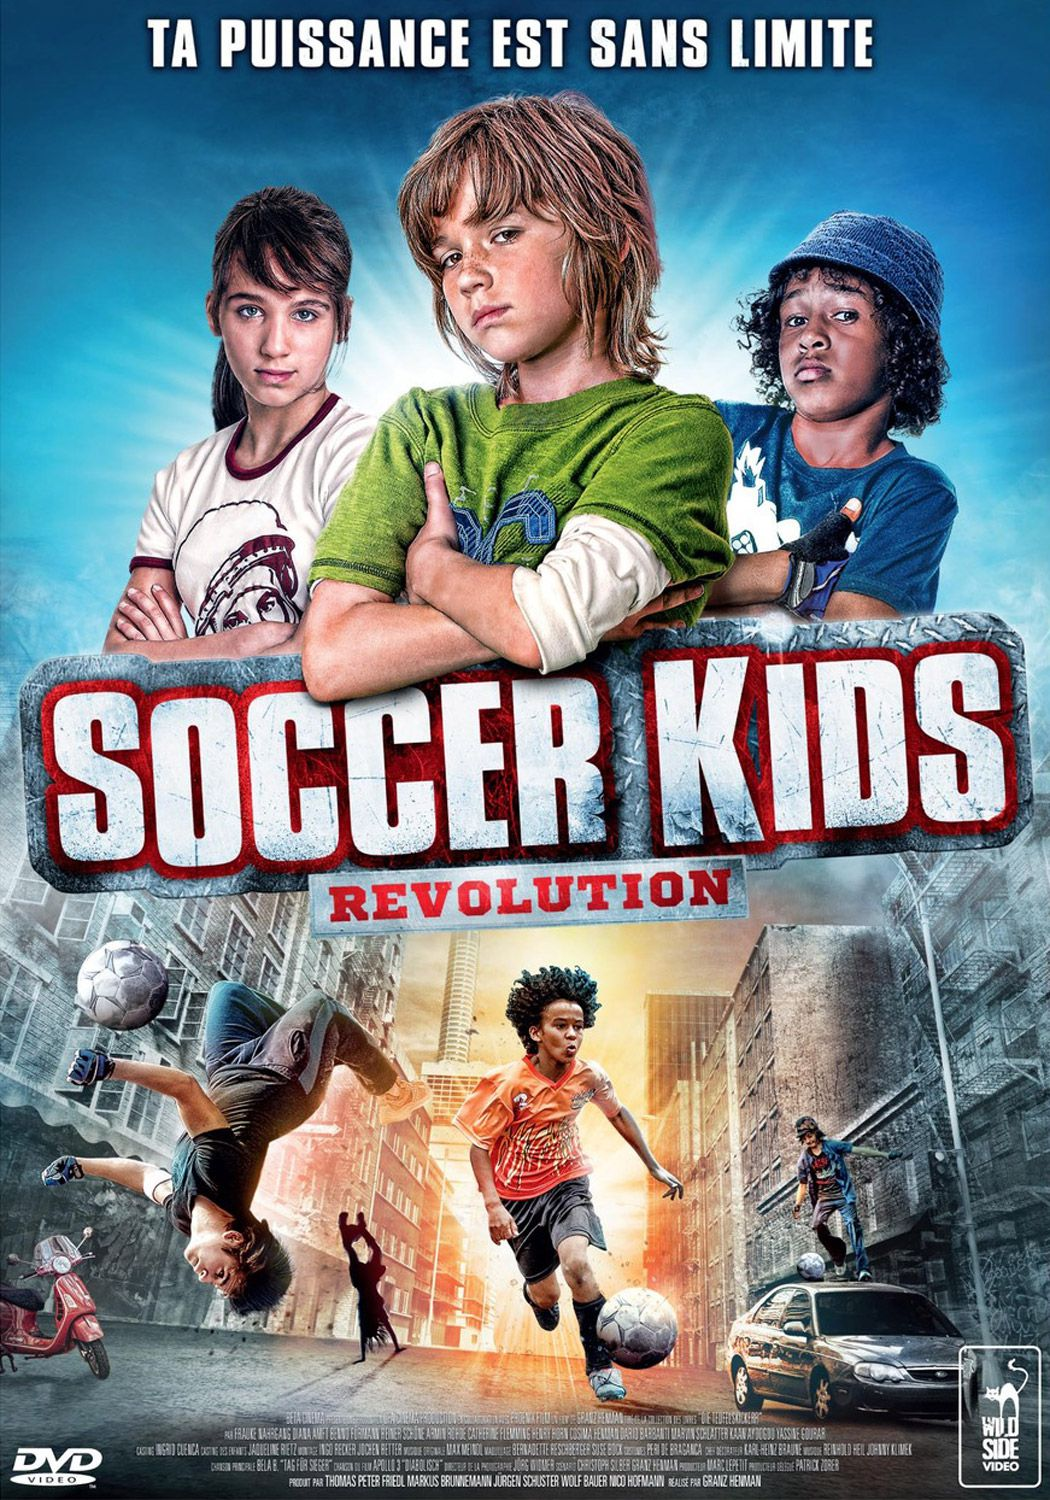 Soccer Kids revolution - Film (2010)